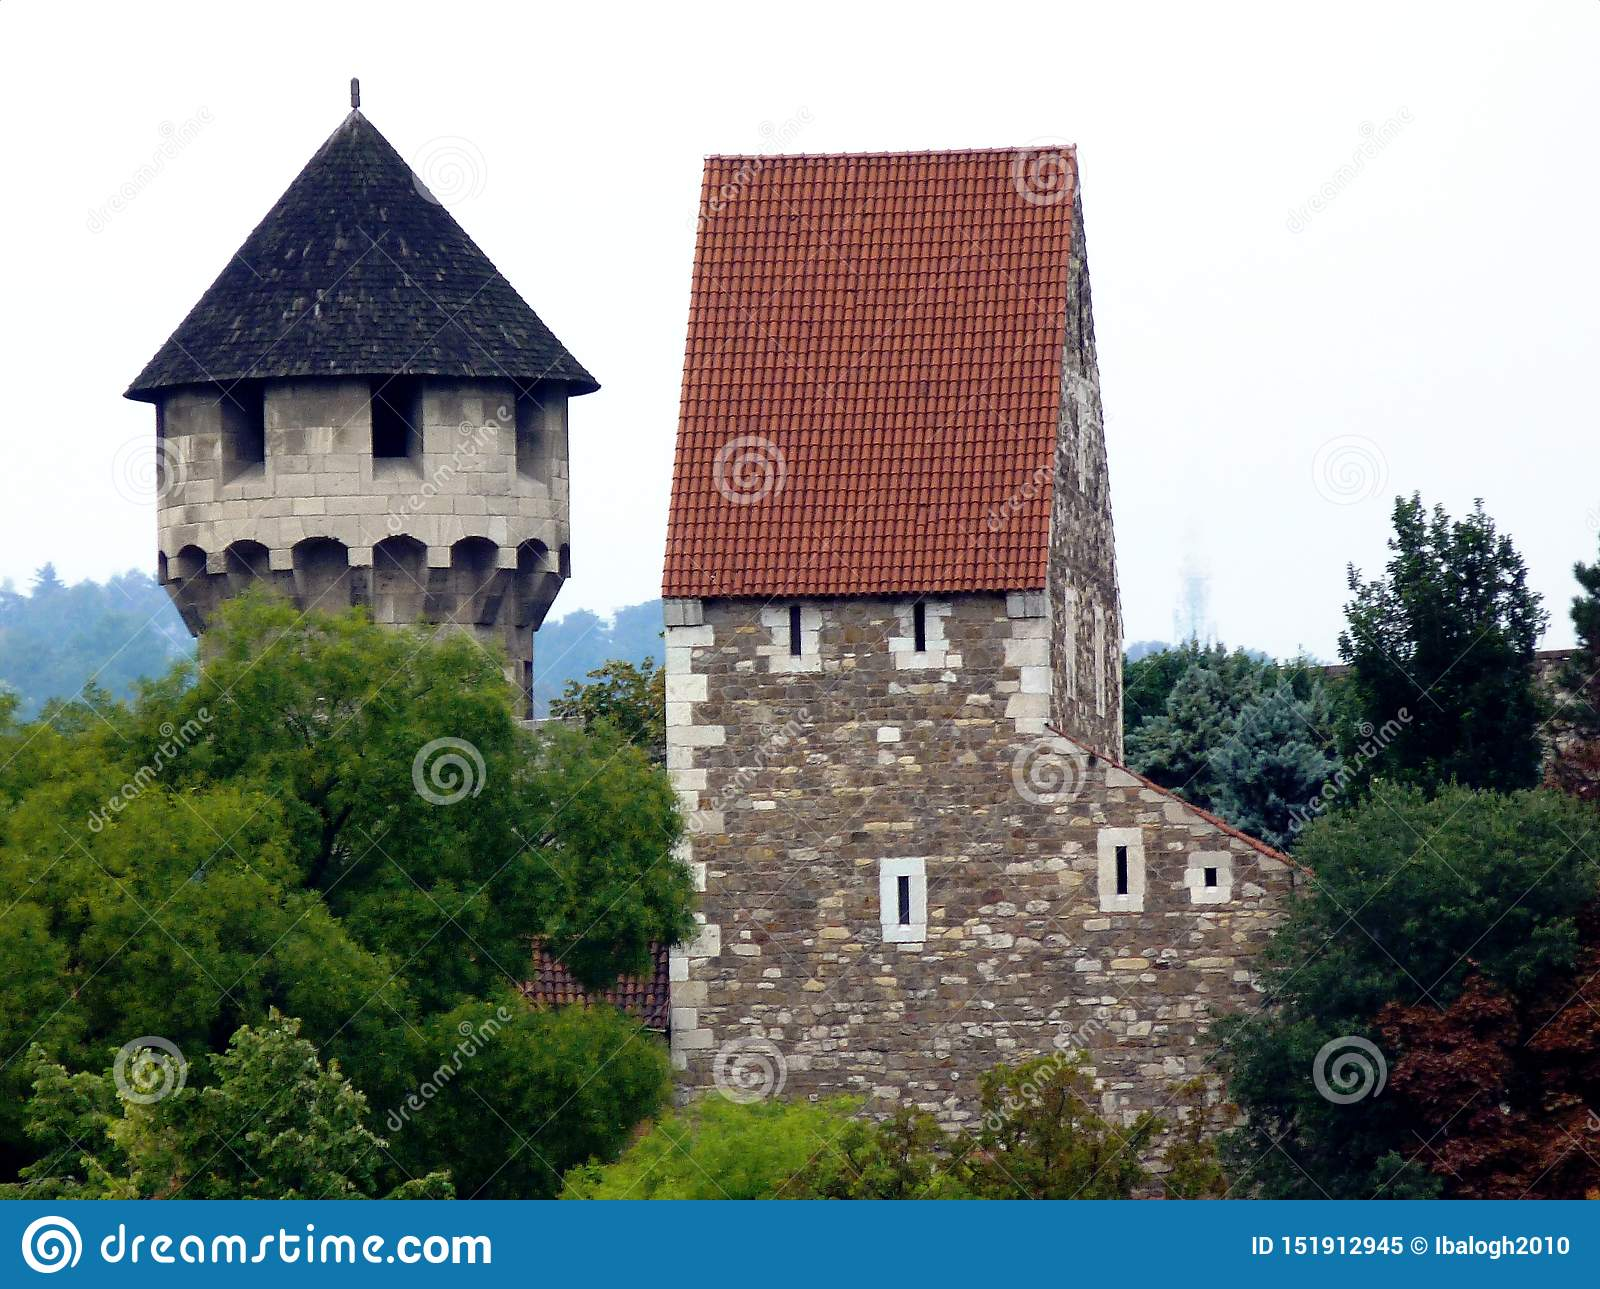 Stone Tower And Turret With Wooden Shingle Of Steep Sloped Roof